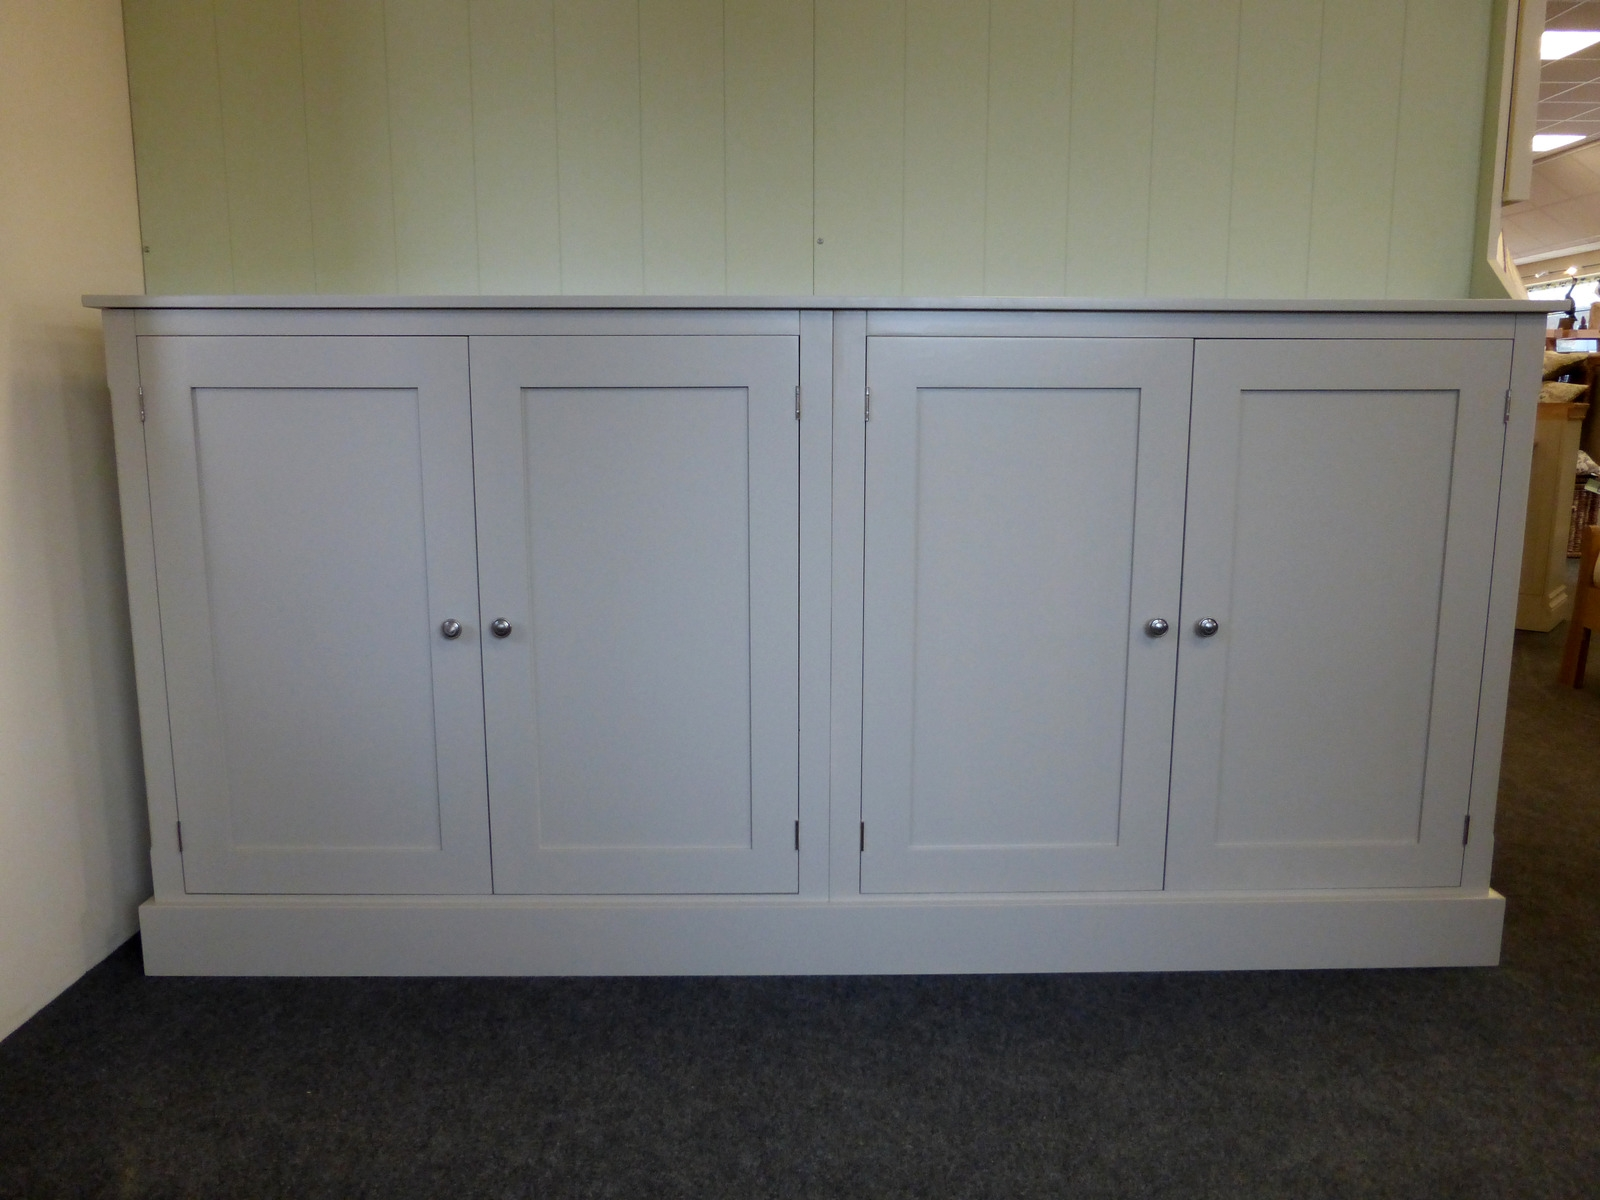 Cupboards Buy Pine Oak Painted And Bespoke Furniture Within Bespoke Cupboards (Image 8 of 15)